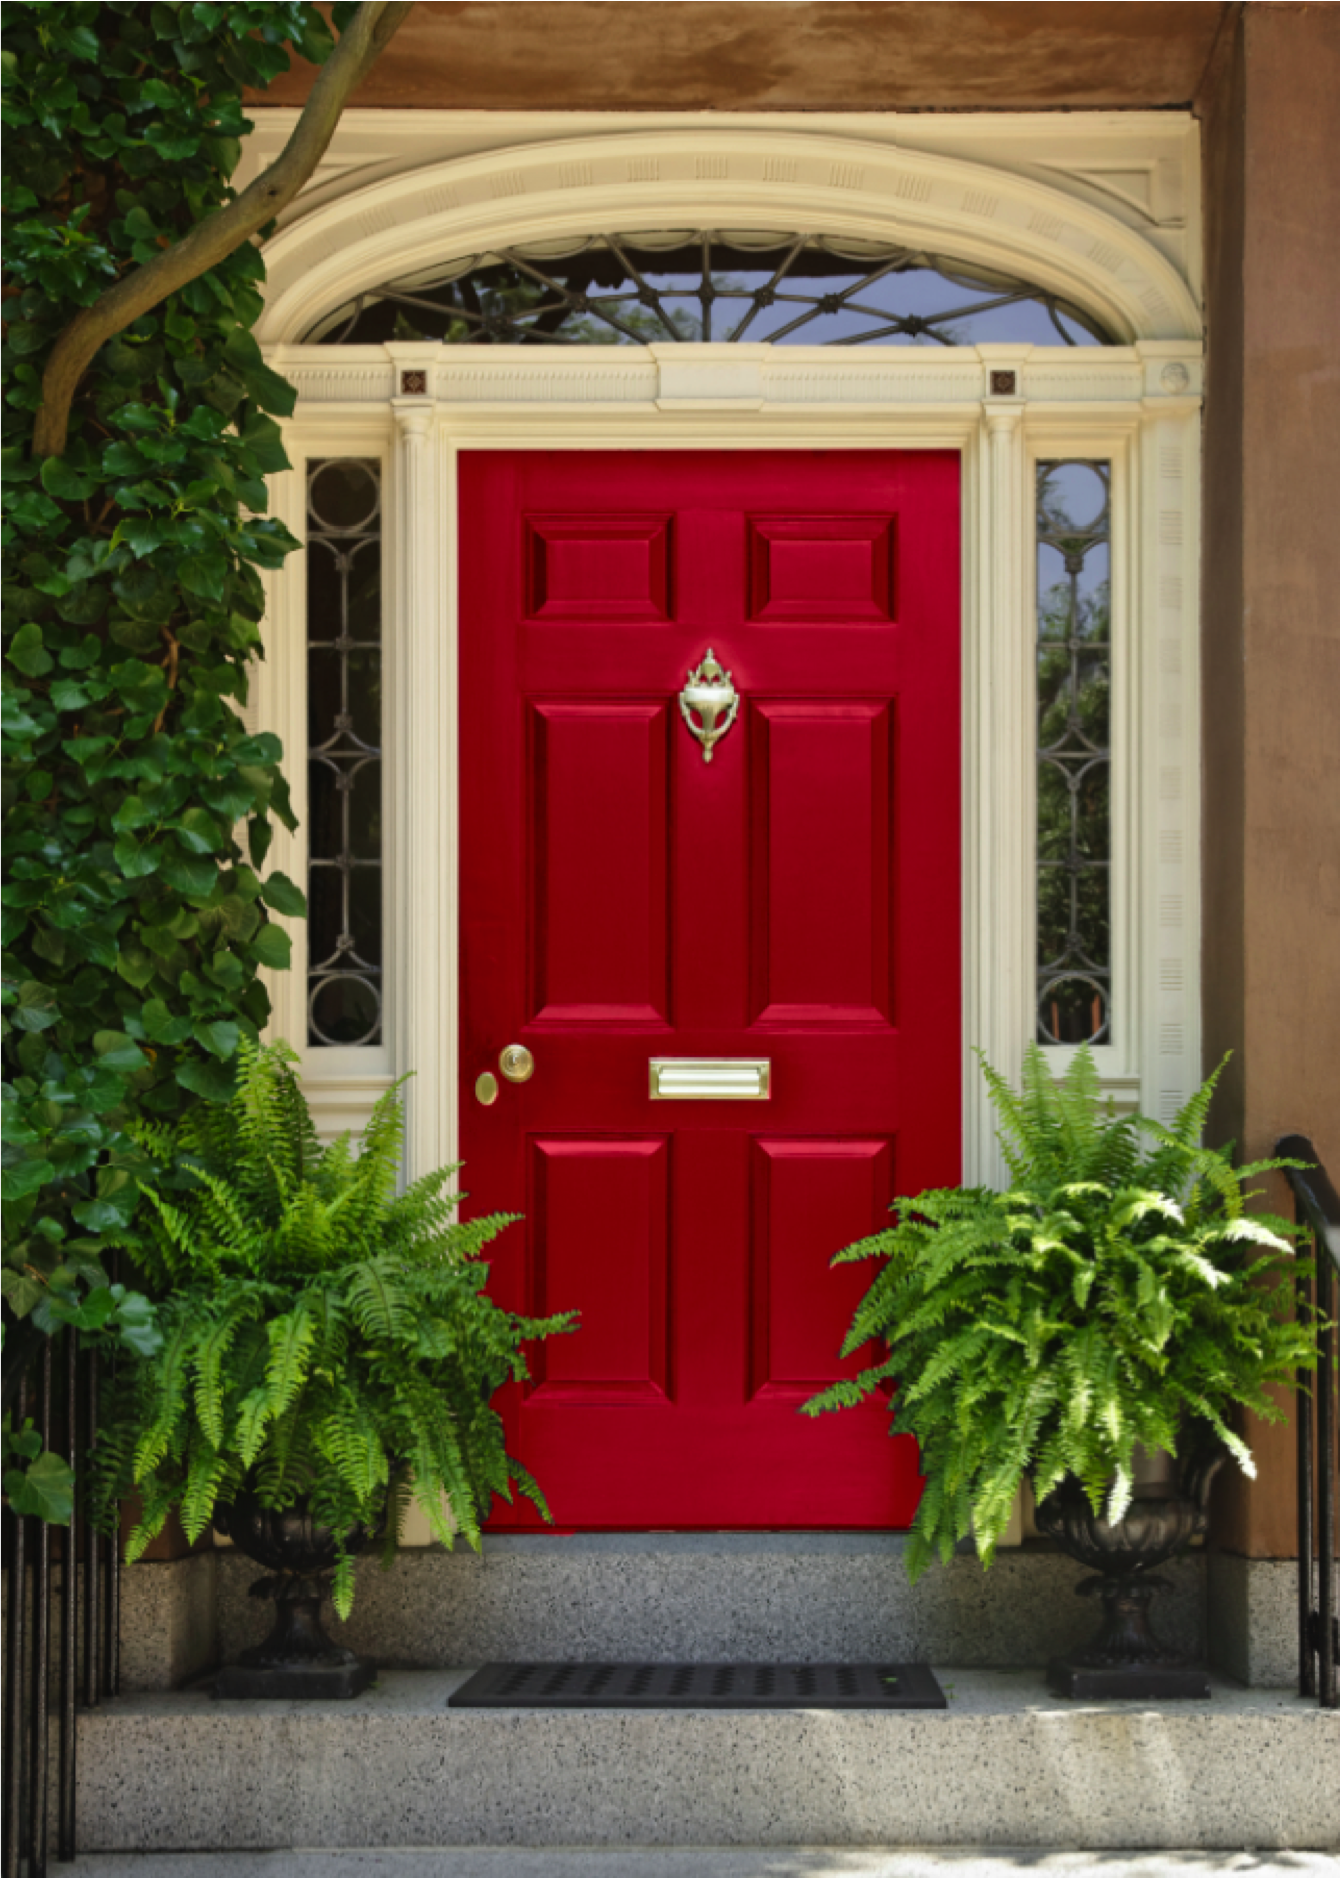 Vibrant red door decorated with green potted plants